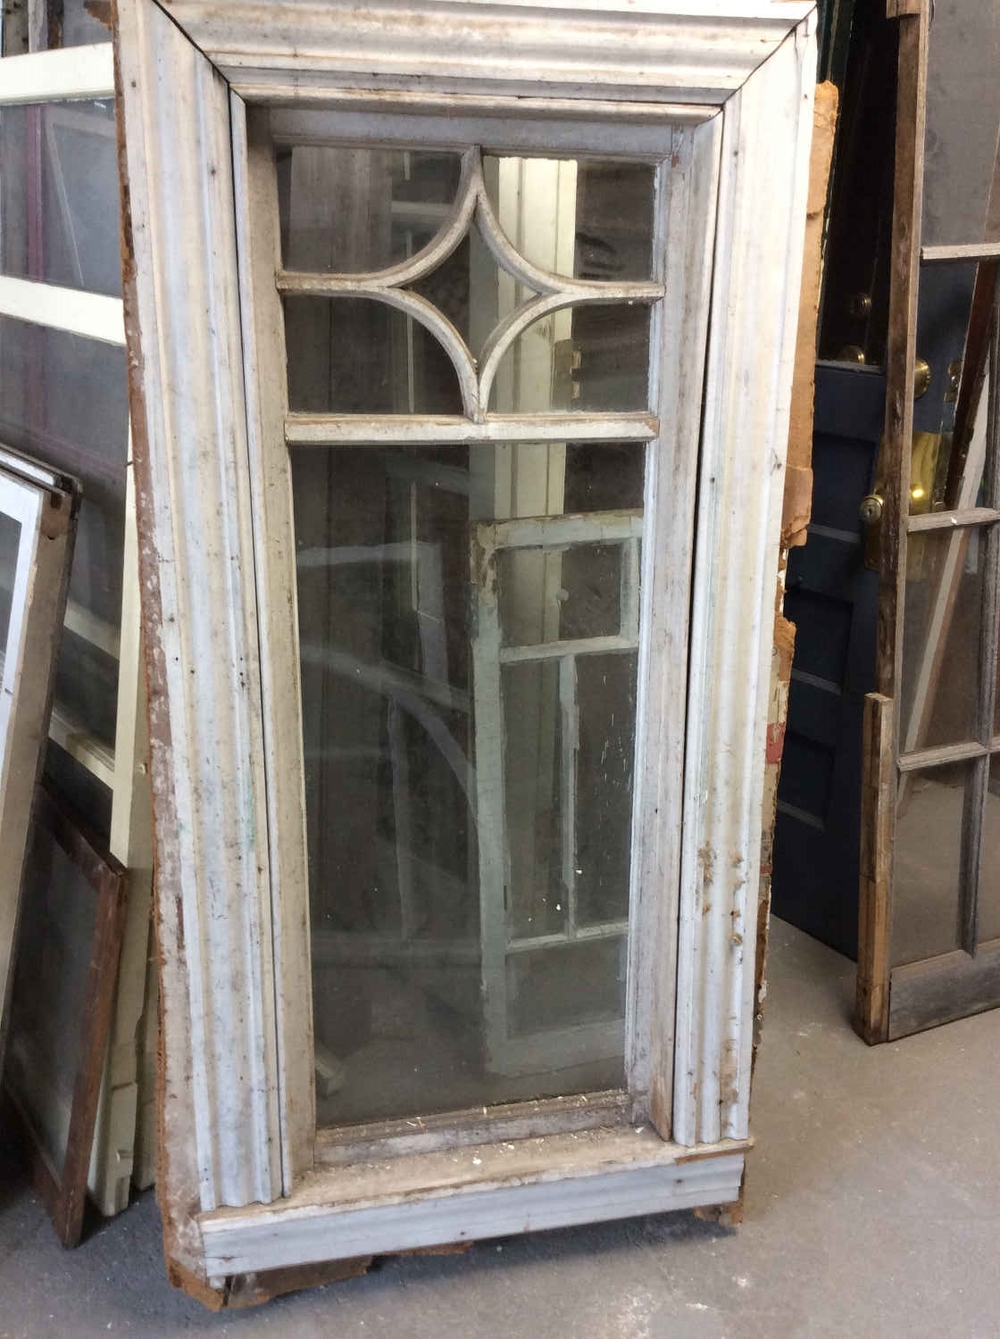 All windows portland architectural salvage for Queen anne windows